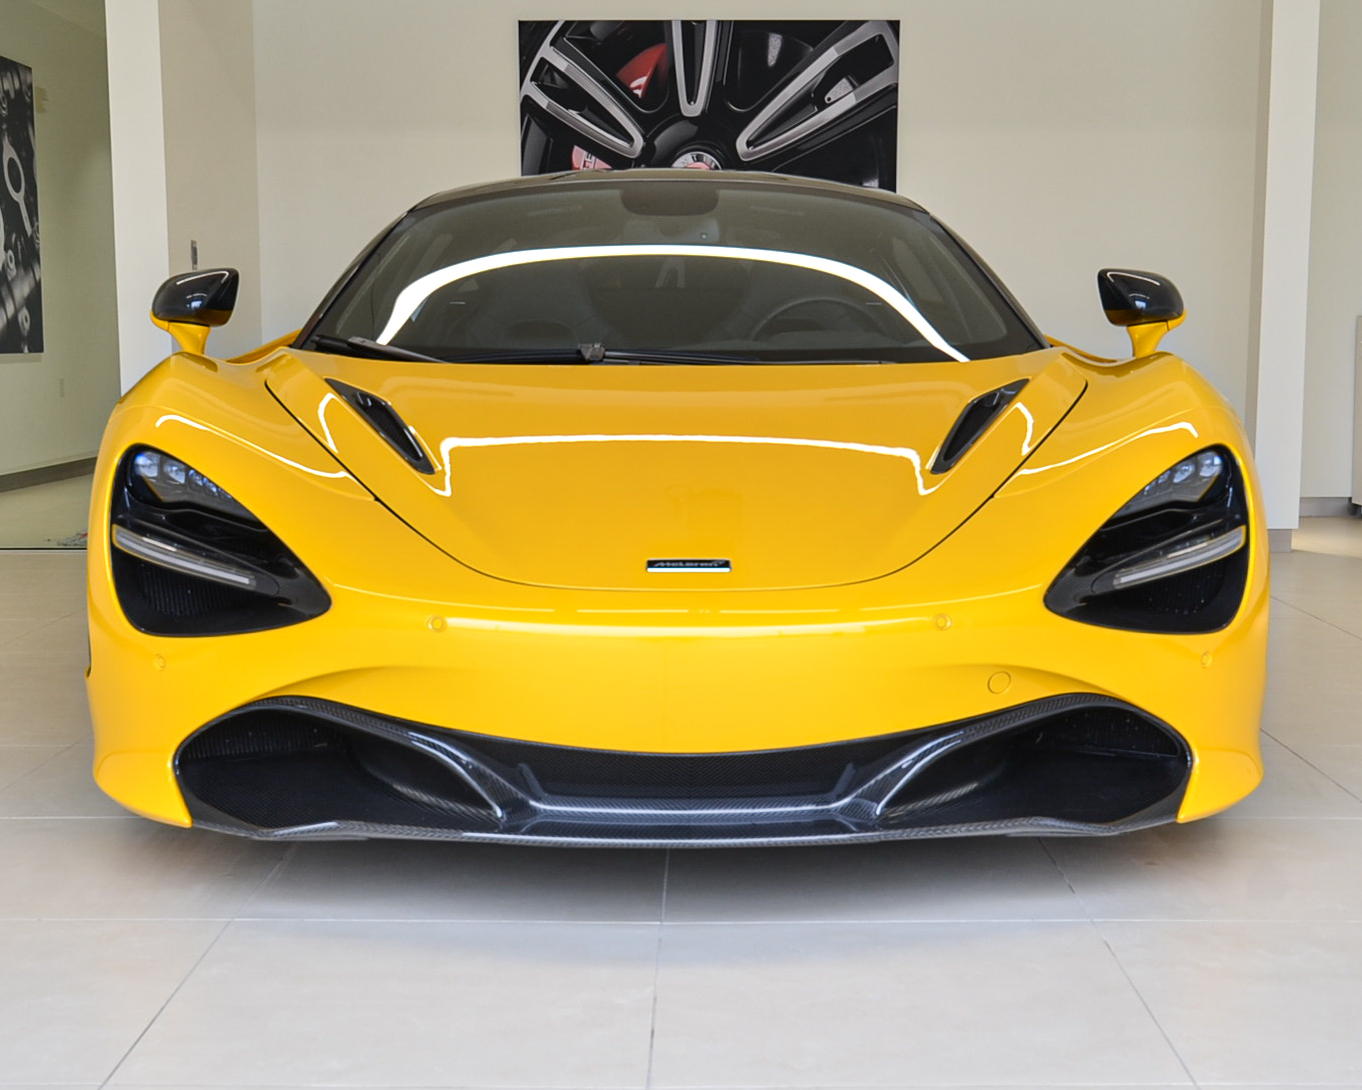 Uploads 2f02 yellow 720s.jpg   1560352022014   ai4rpswgz6b   vehicleimage   333511   02 yellow 720s